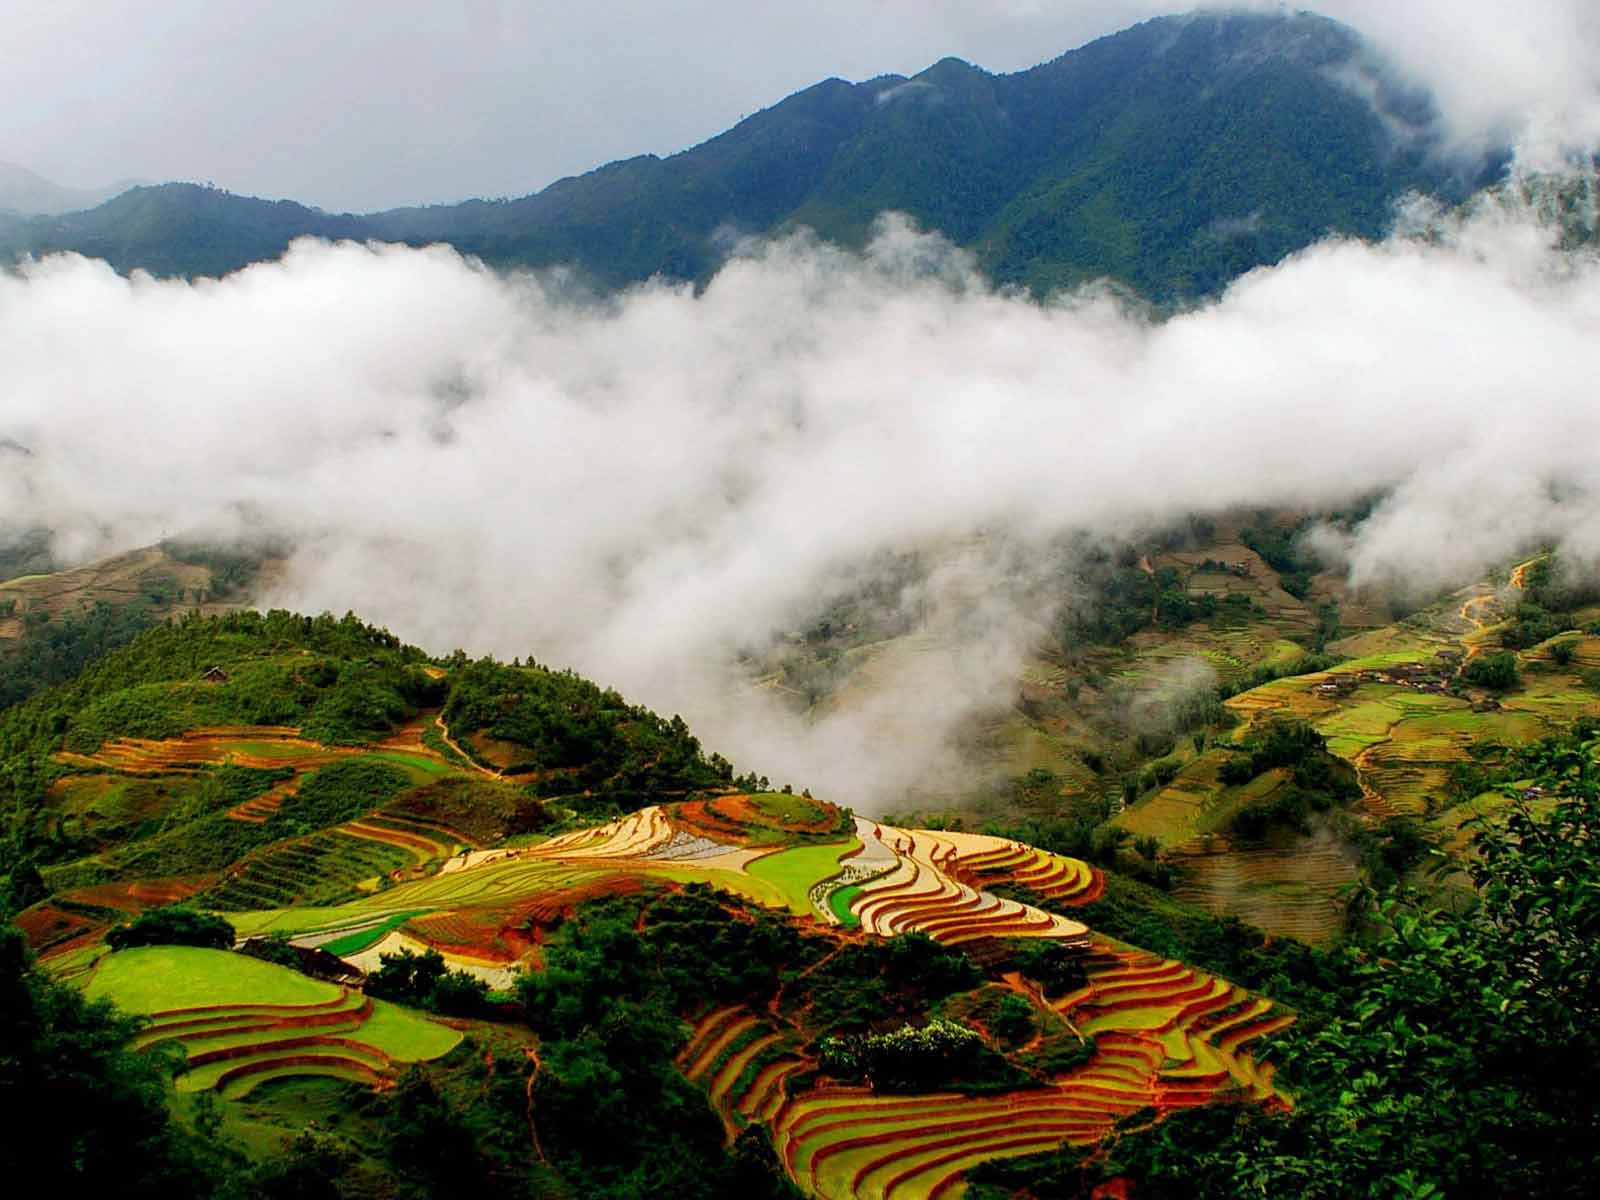 Sapa in January seen from above